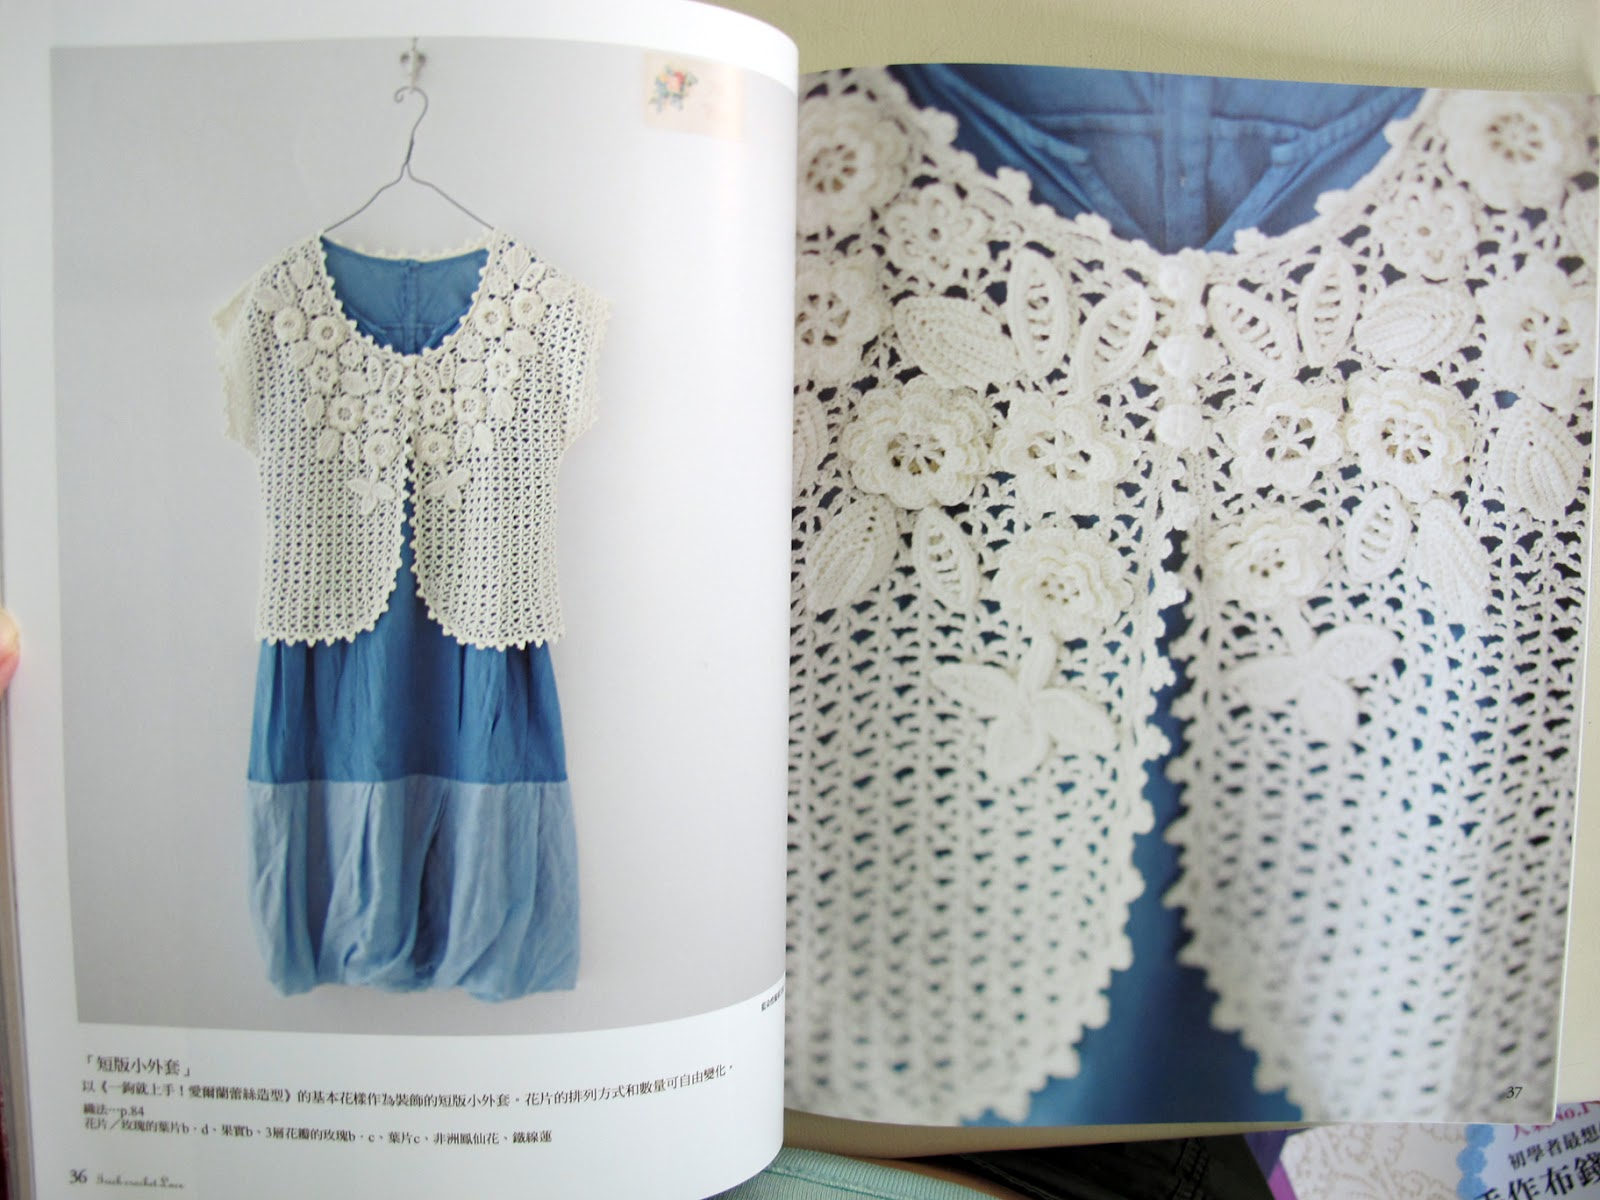 ... .com: Japanese Crochet Book: I want to try Irish Crochet Lace Book